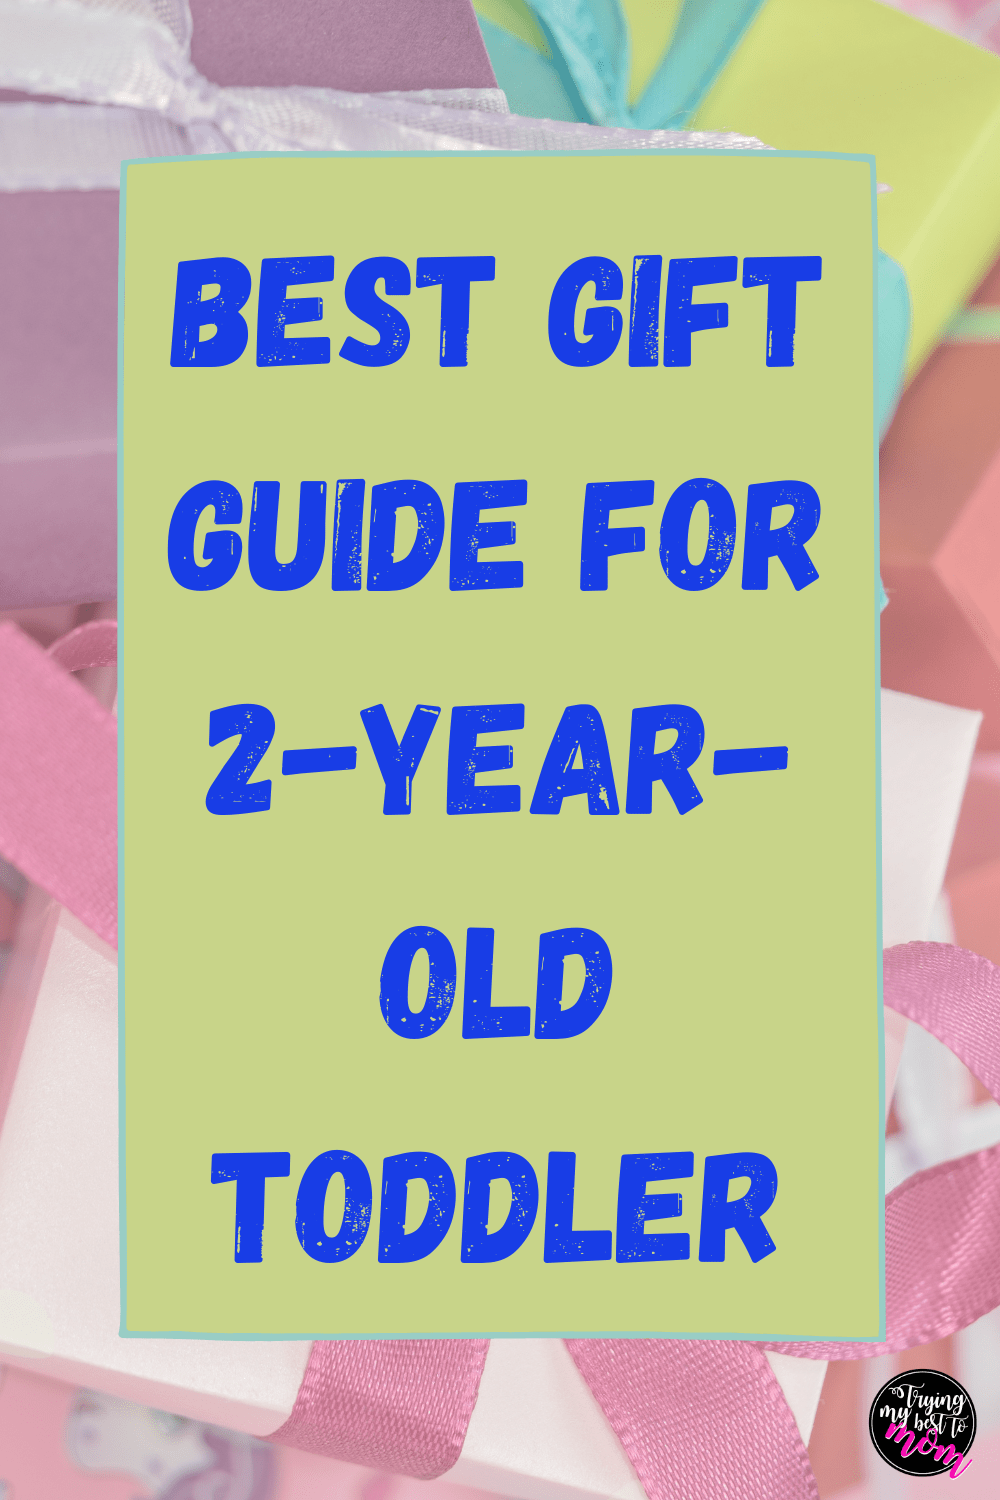 Gift Guide for 2 Year Old Toddler Girl